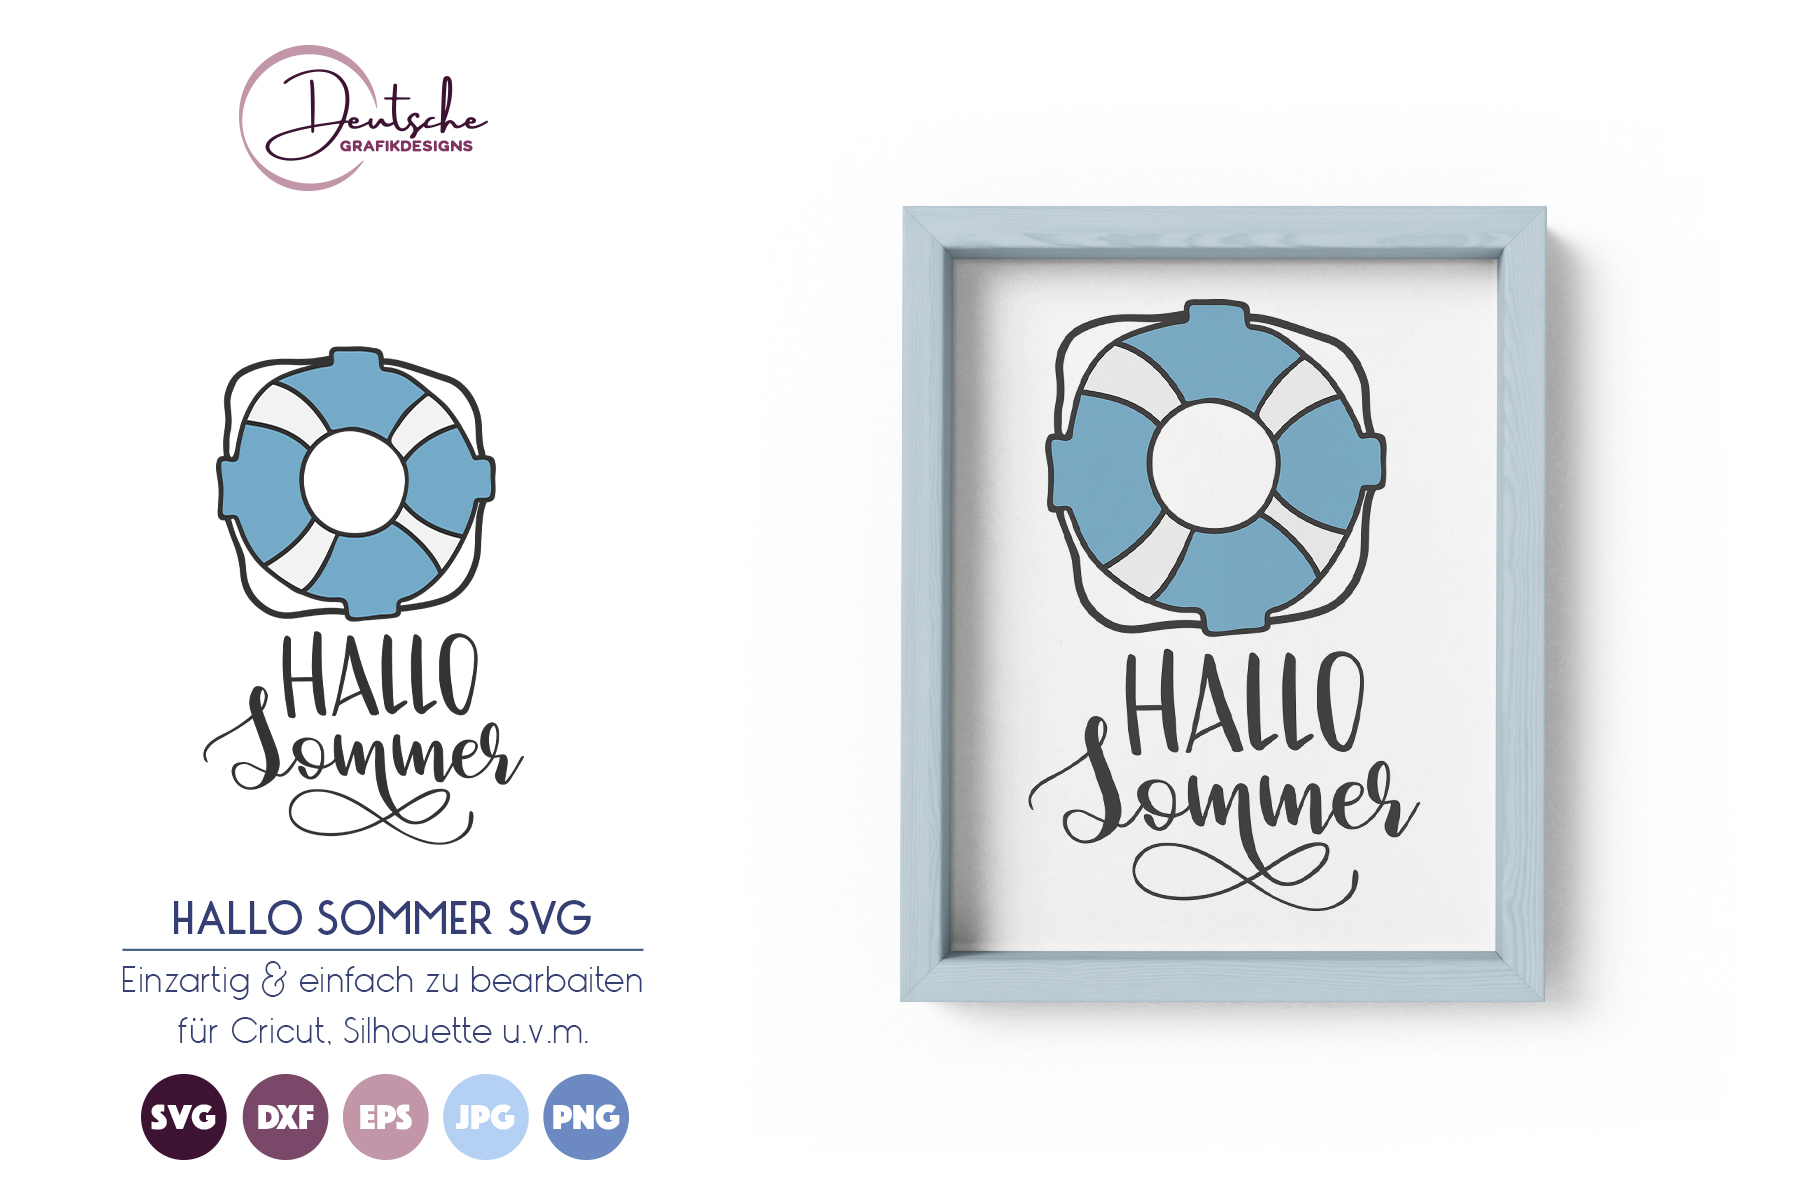 Hallo Sommer SVG example image 1